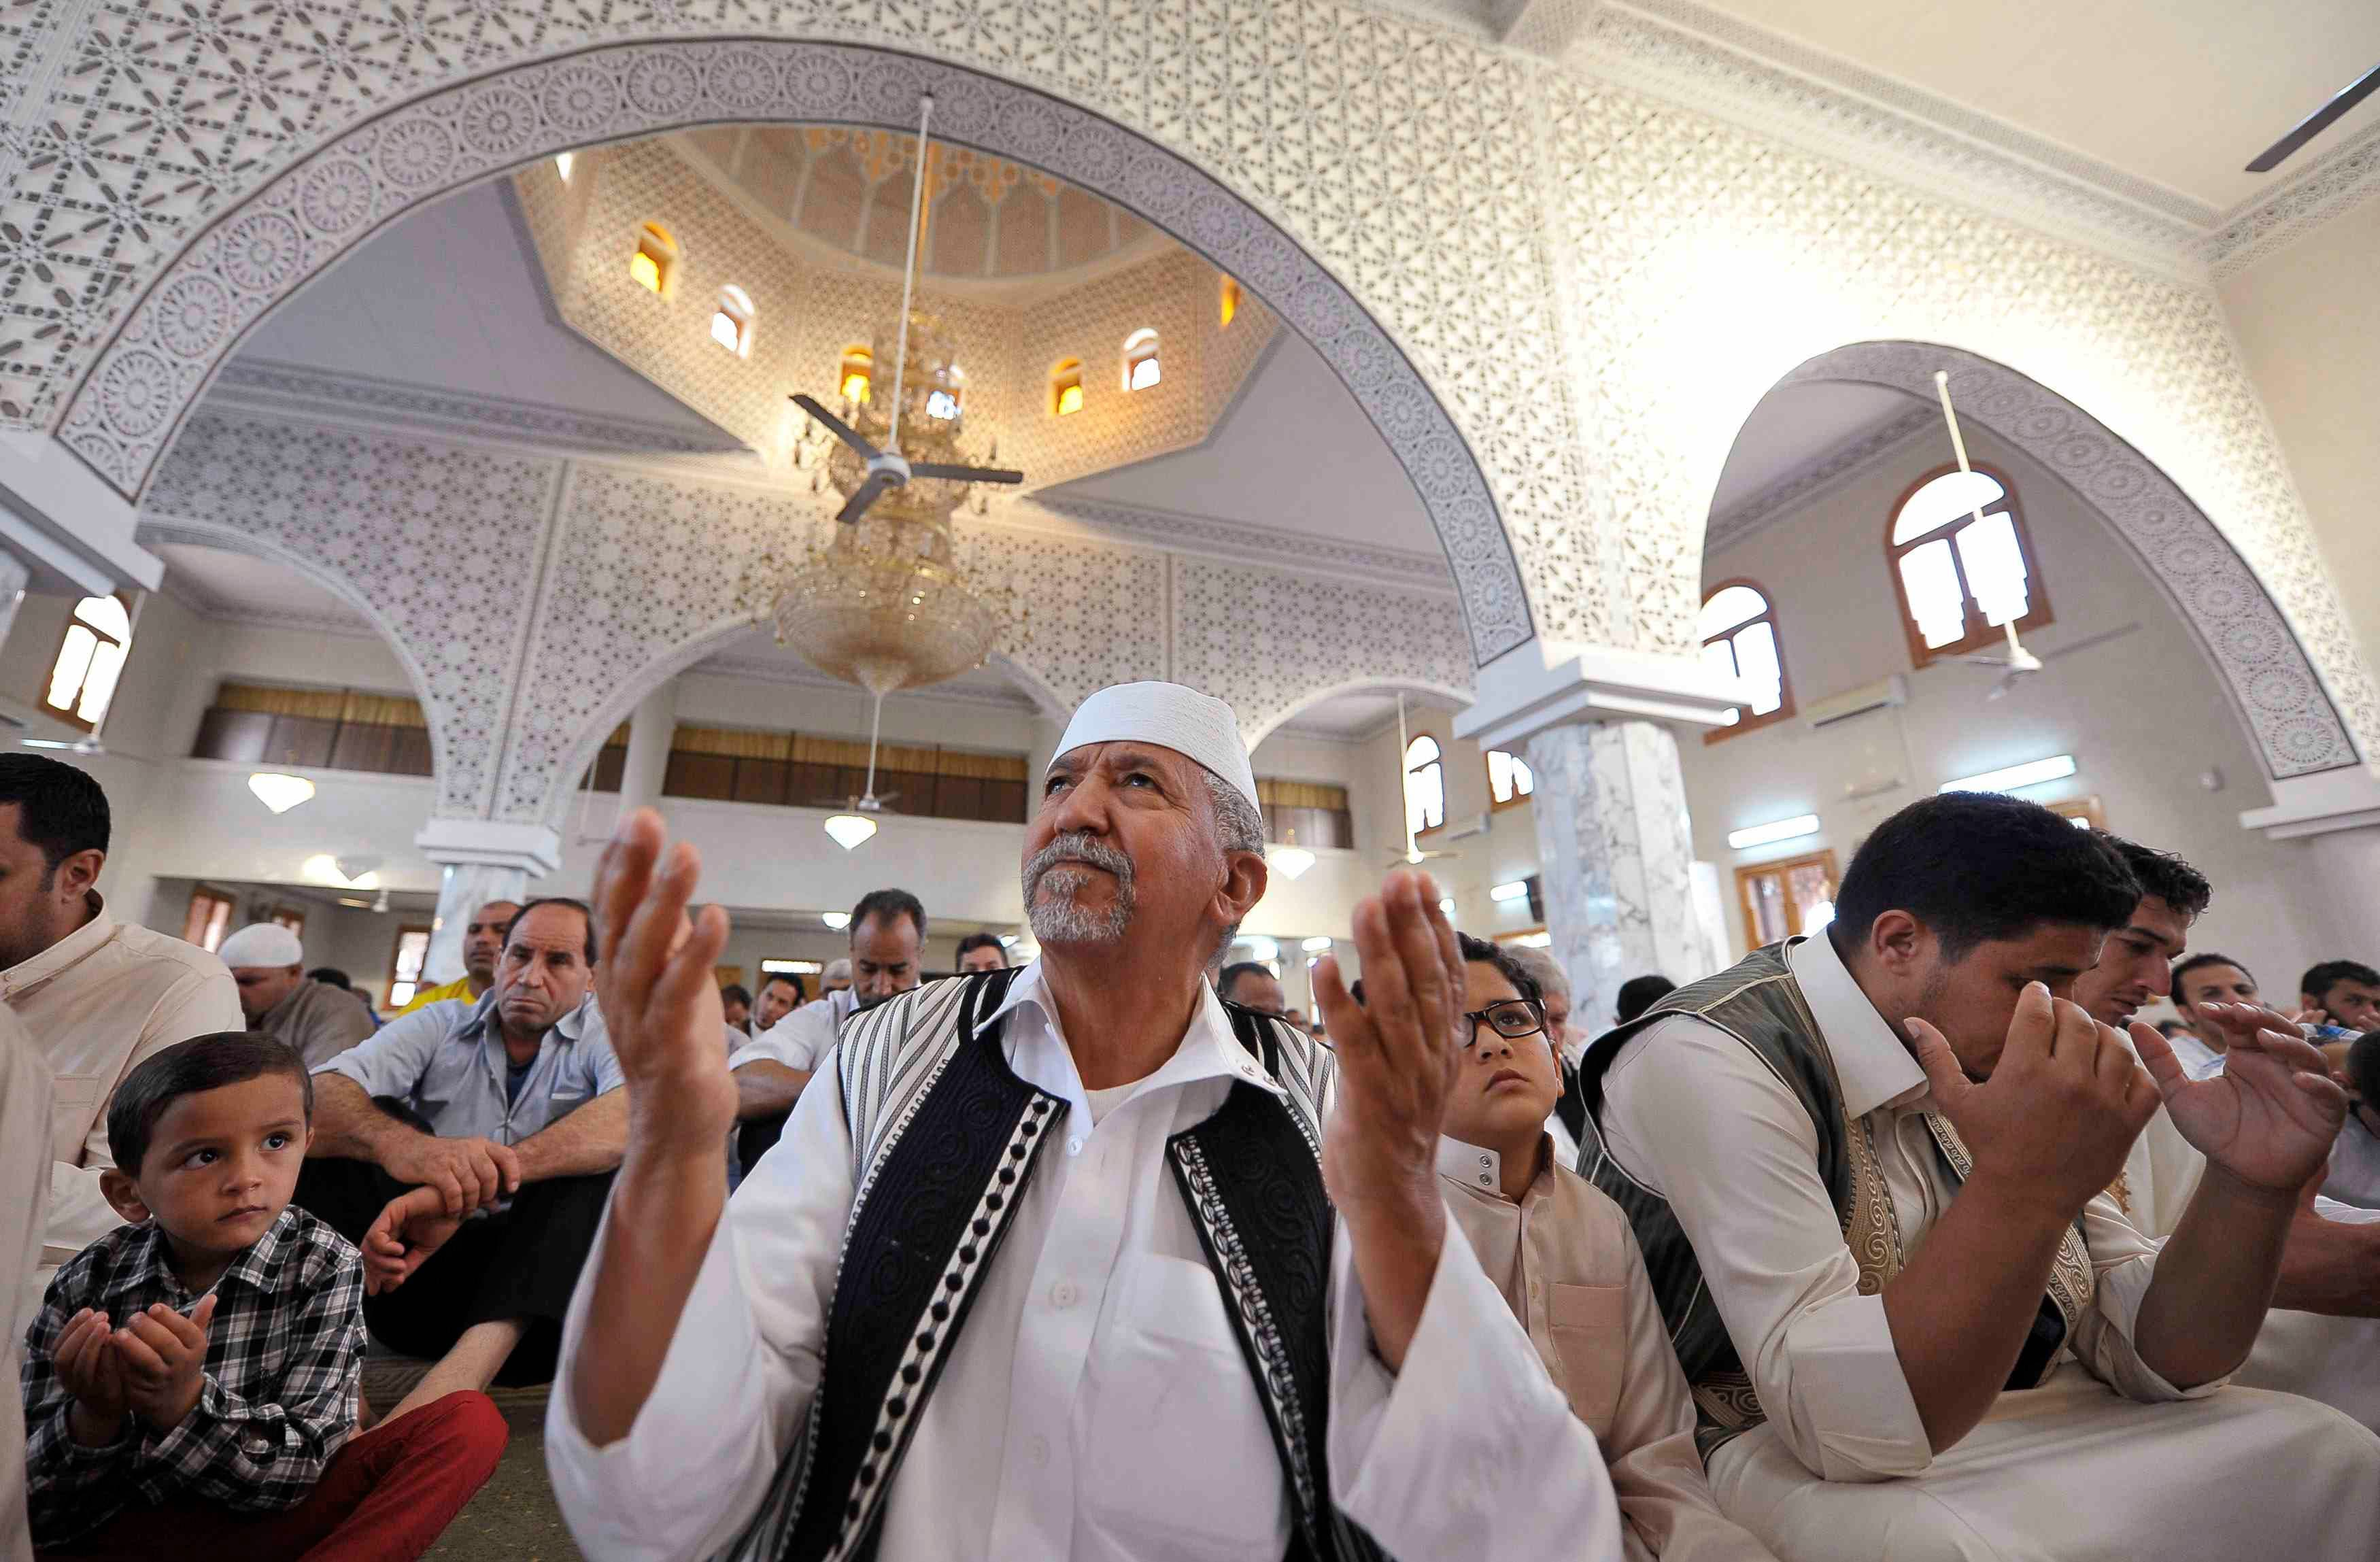 muslims around the world celebrate first day of eid al adha al a trip around the muslim world